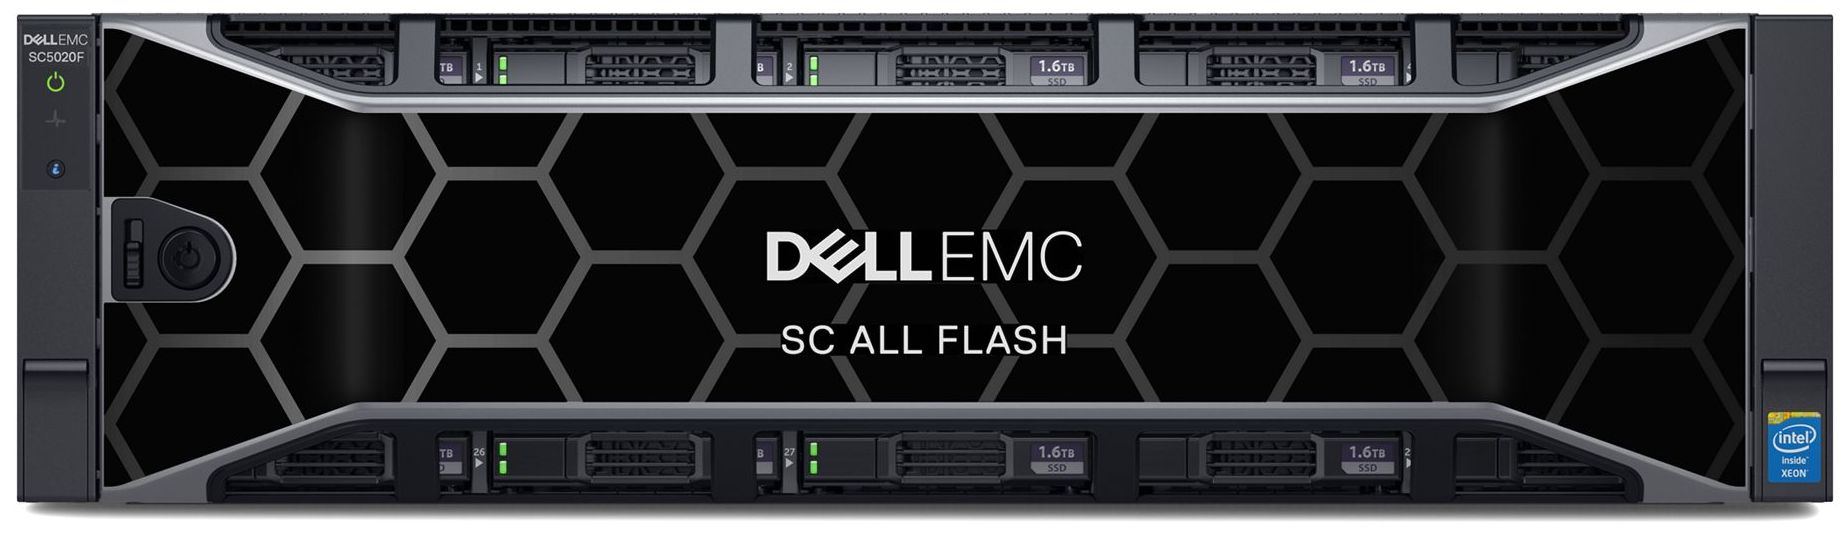 Dell EMC SC5020F Storage Array